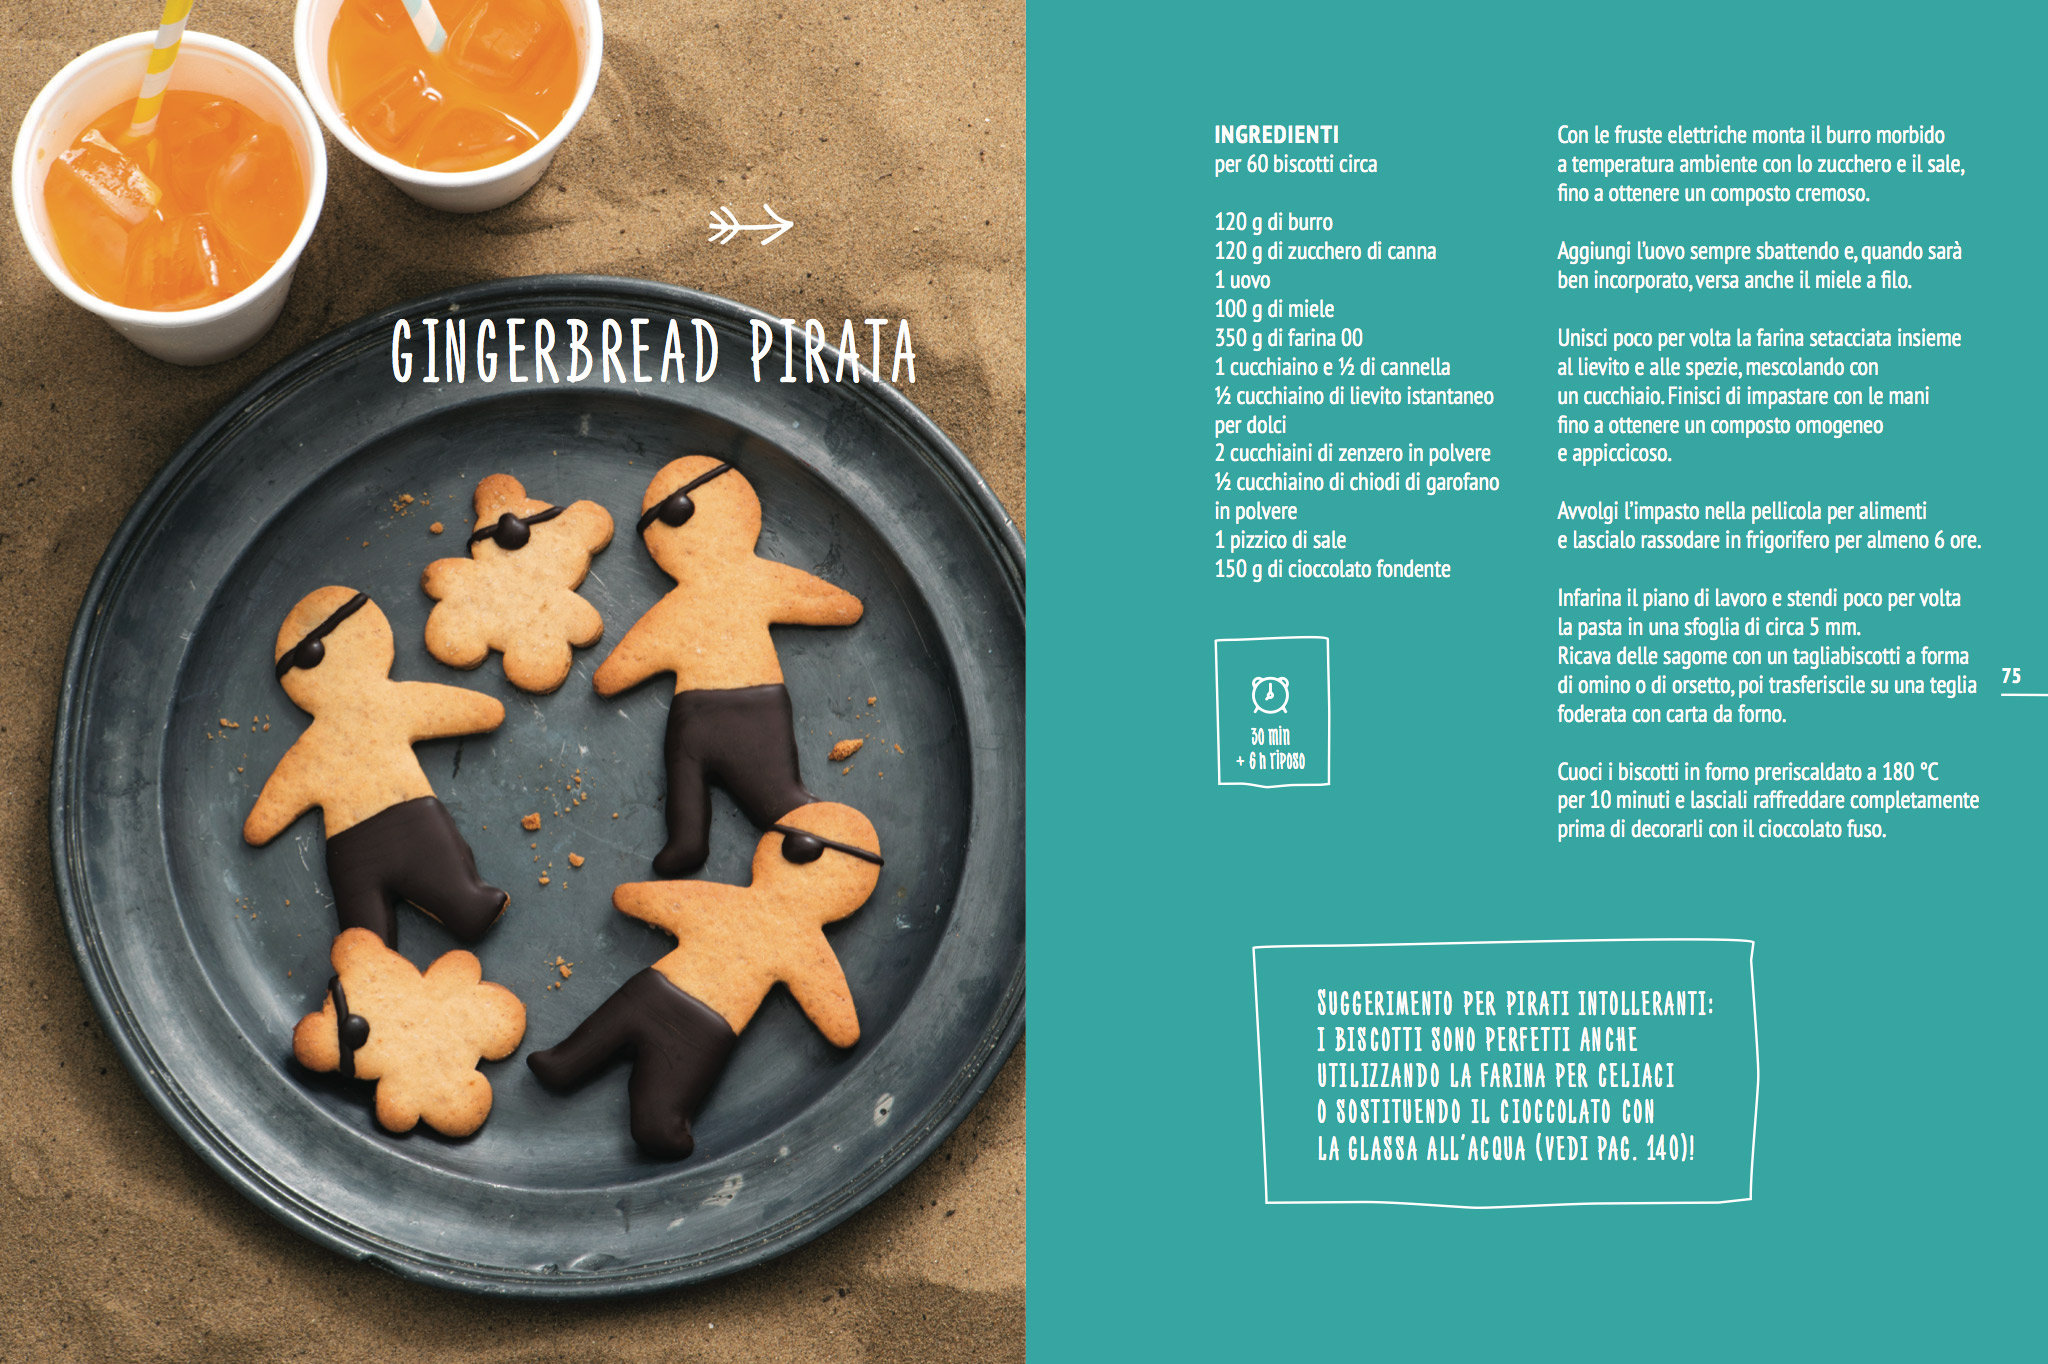 Gingerbread pirata